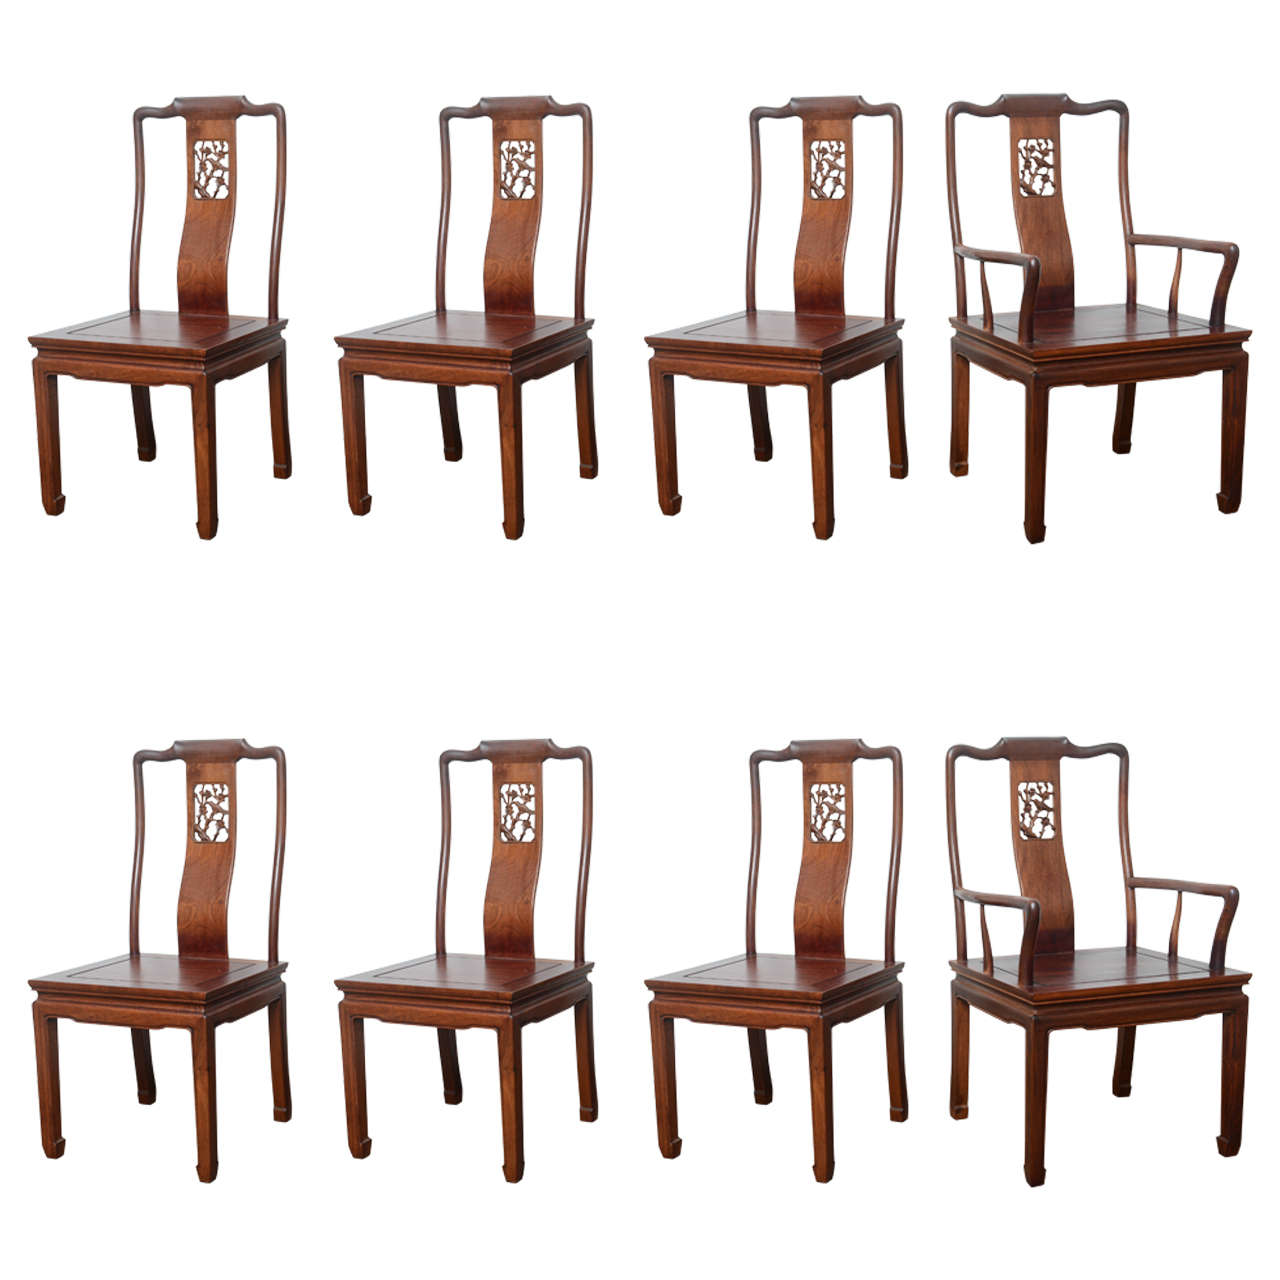 Set Of Eight Vintage Dining Chairs In The Asian Antique Style For Sale